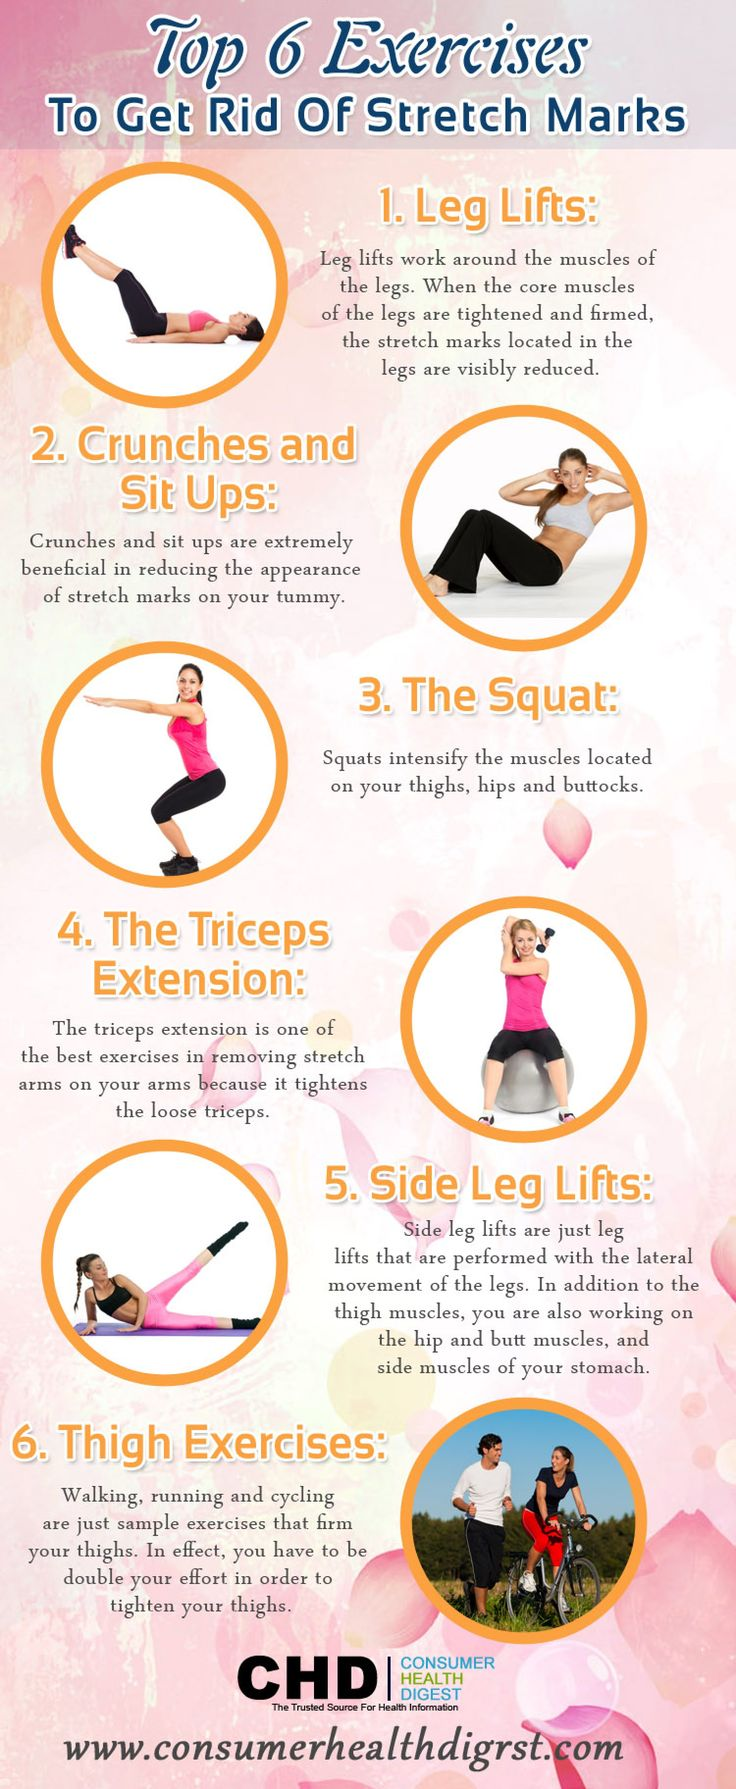 6 Exercises That Help You Get Rid of Stretch Marks Infographic